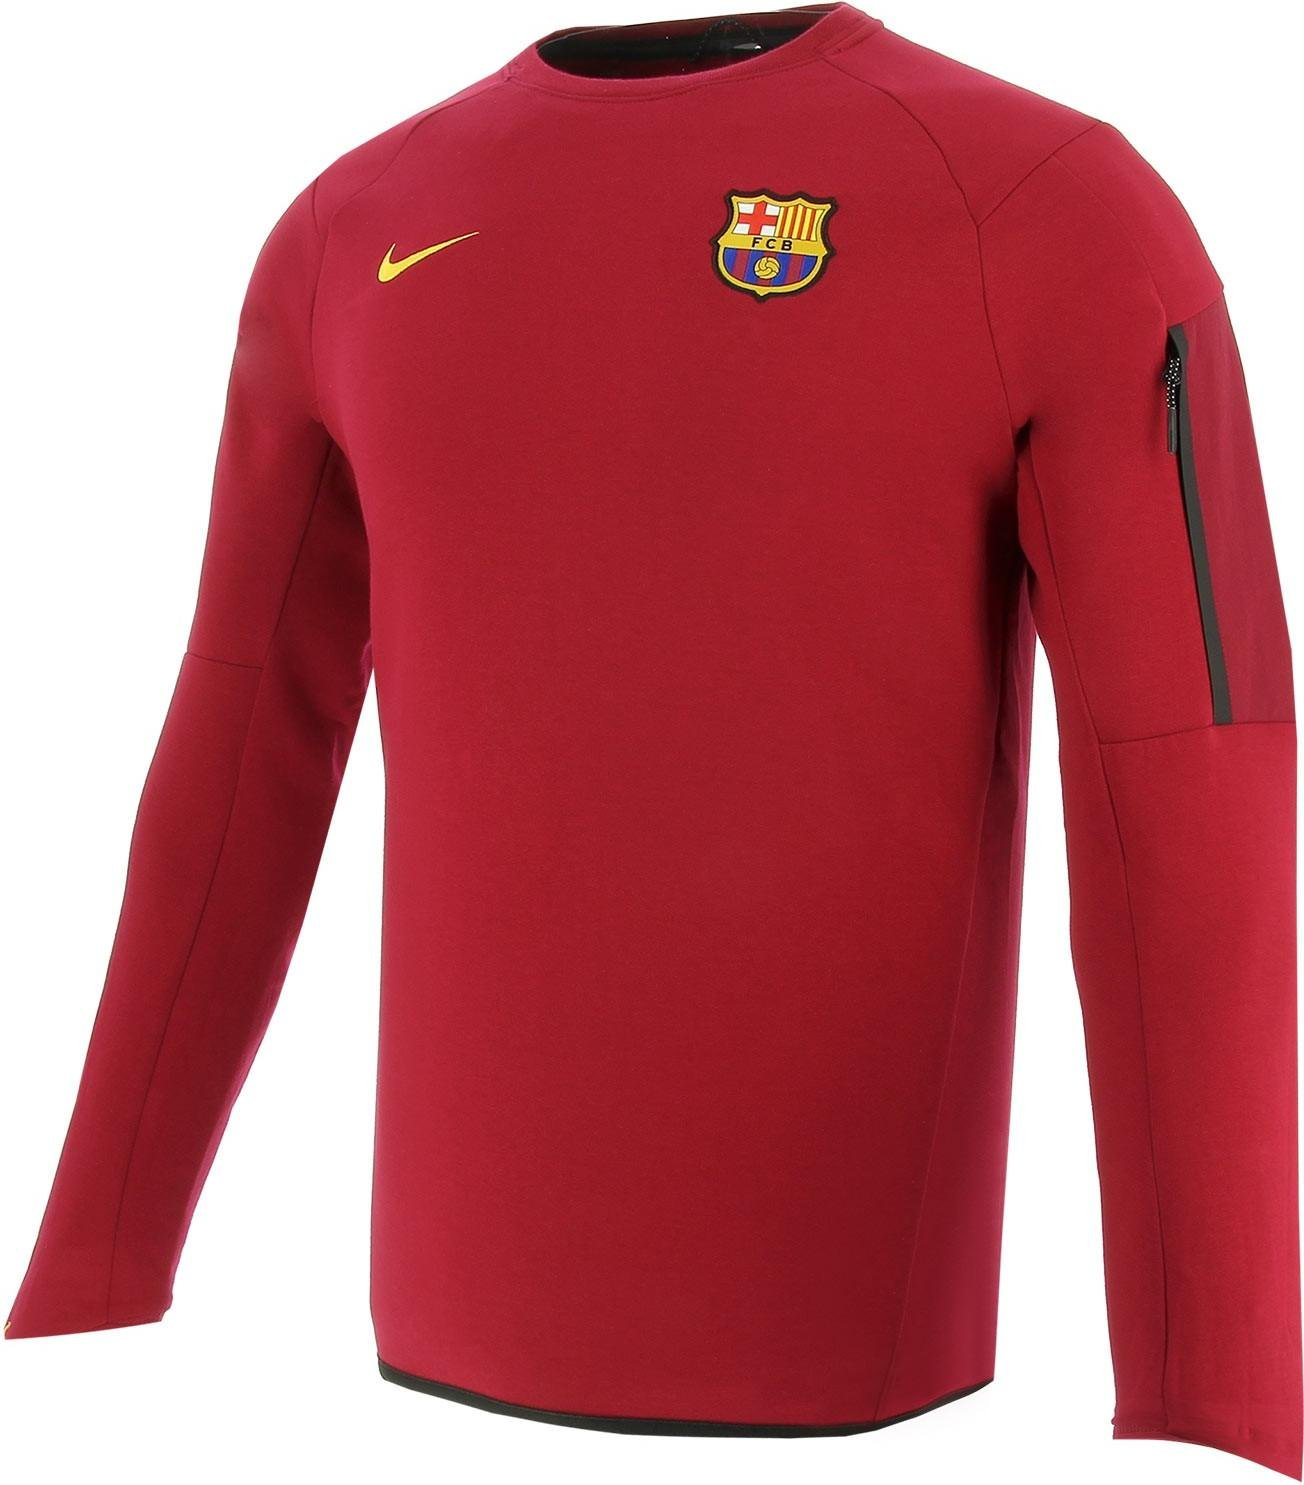 sweatshirt nike fc barcelona tech fleece 2019 2020 top4football com sweatshirt nike fc barcelona tech fleece 2019 2020